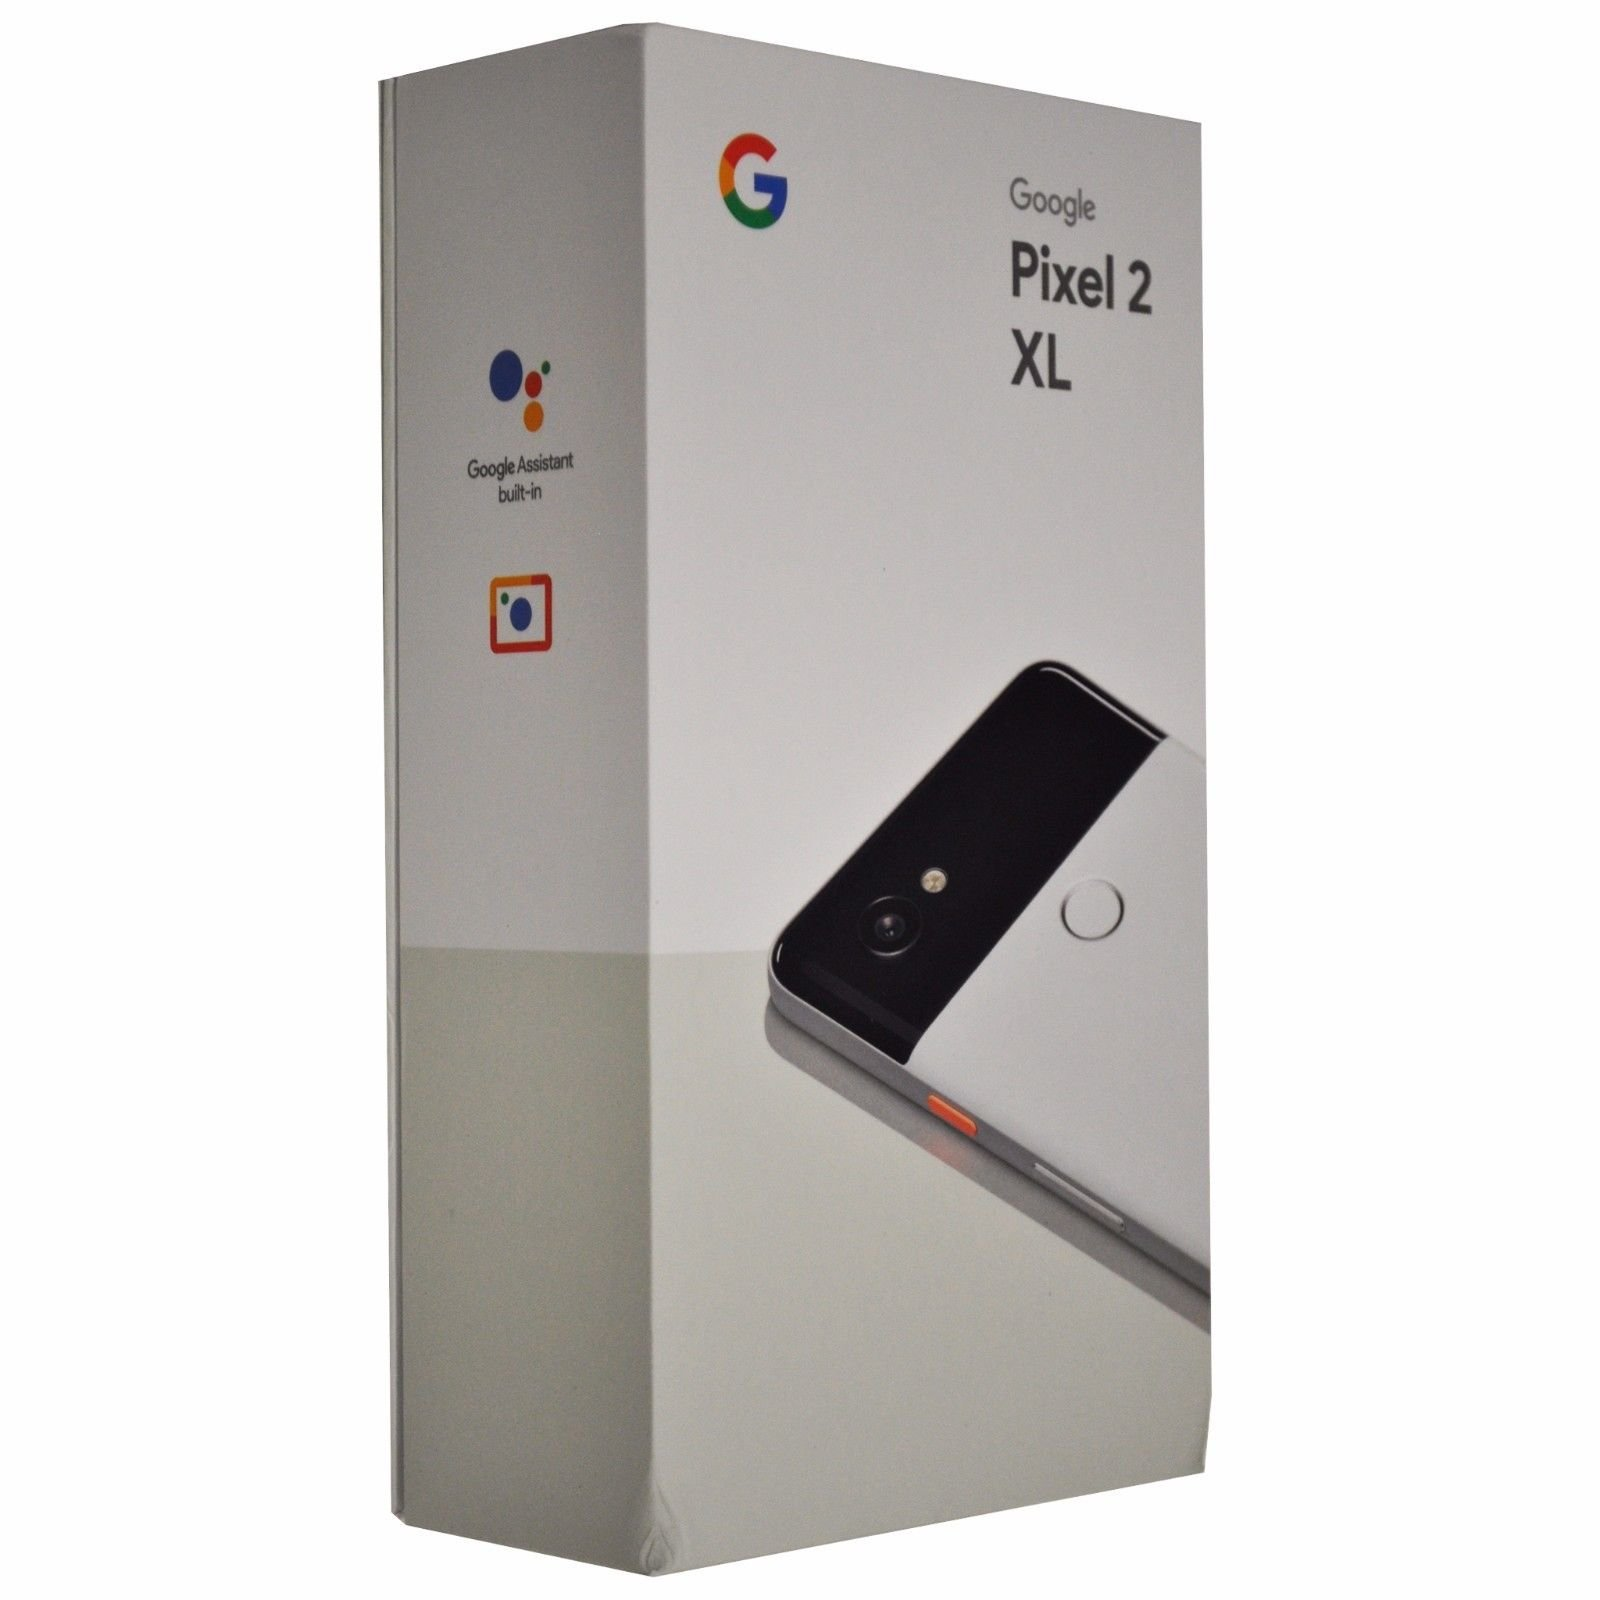 Google Pixel 2 XL 128 GB – Smartphone Negro/Blanco: Amazon.es ...